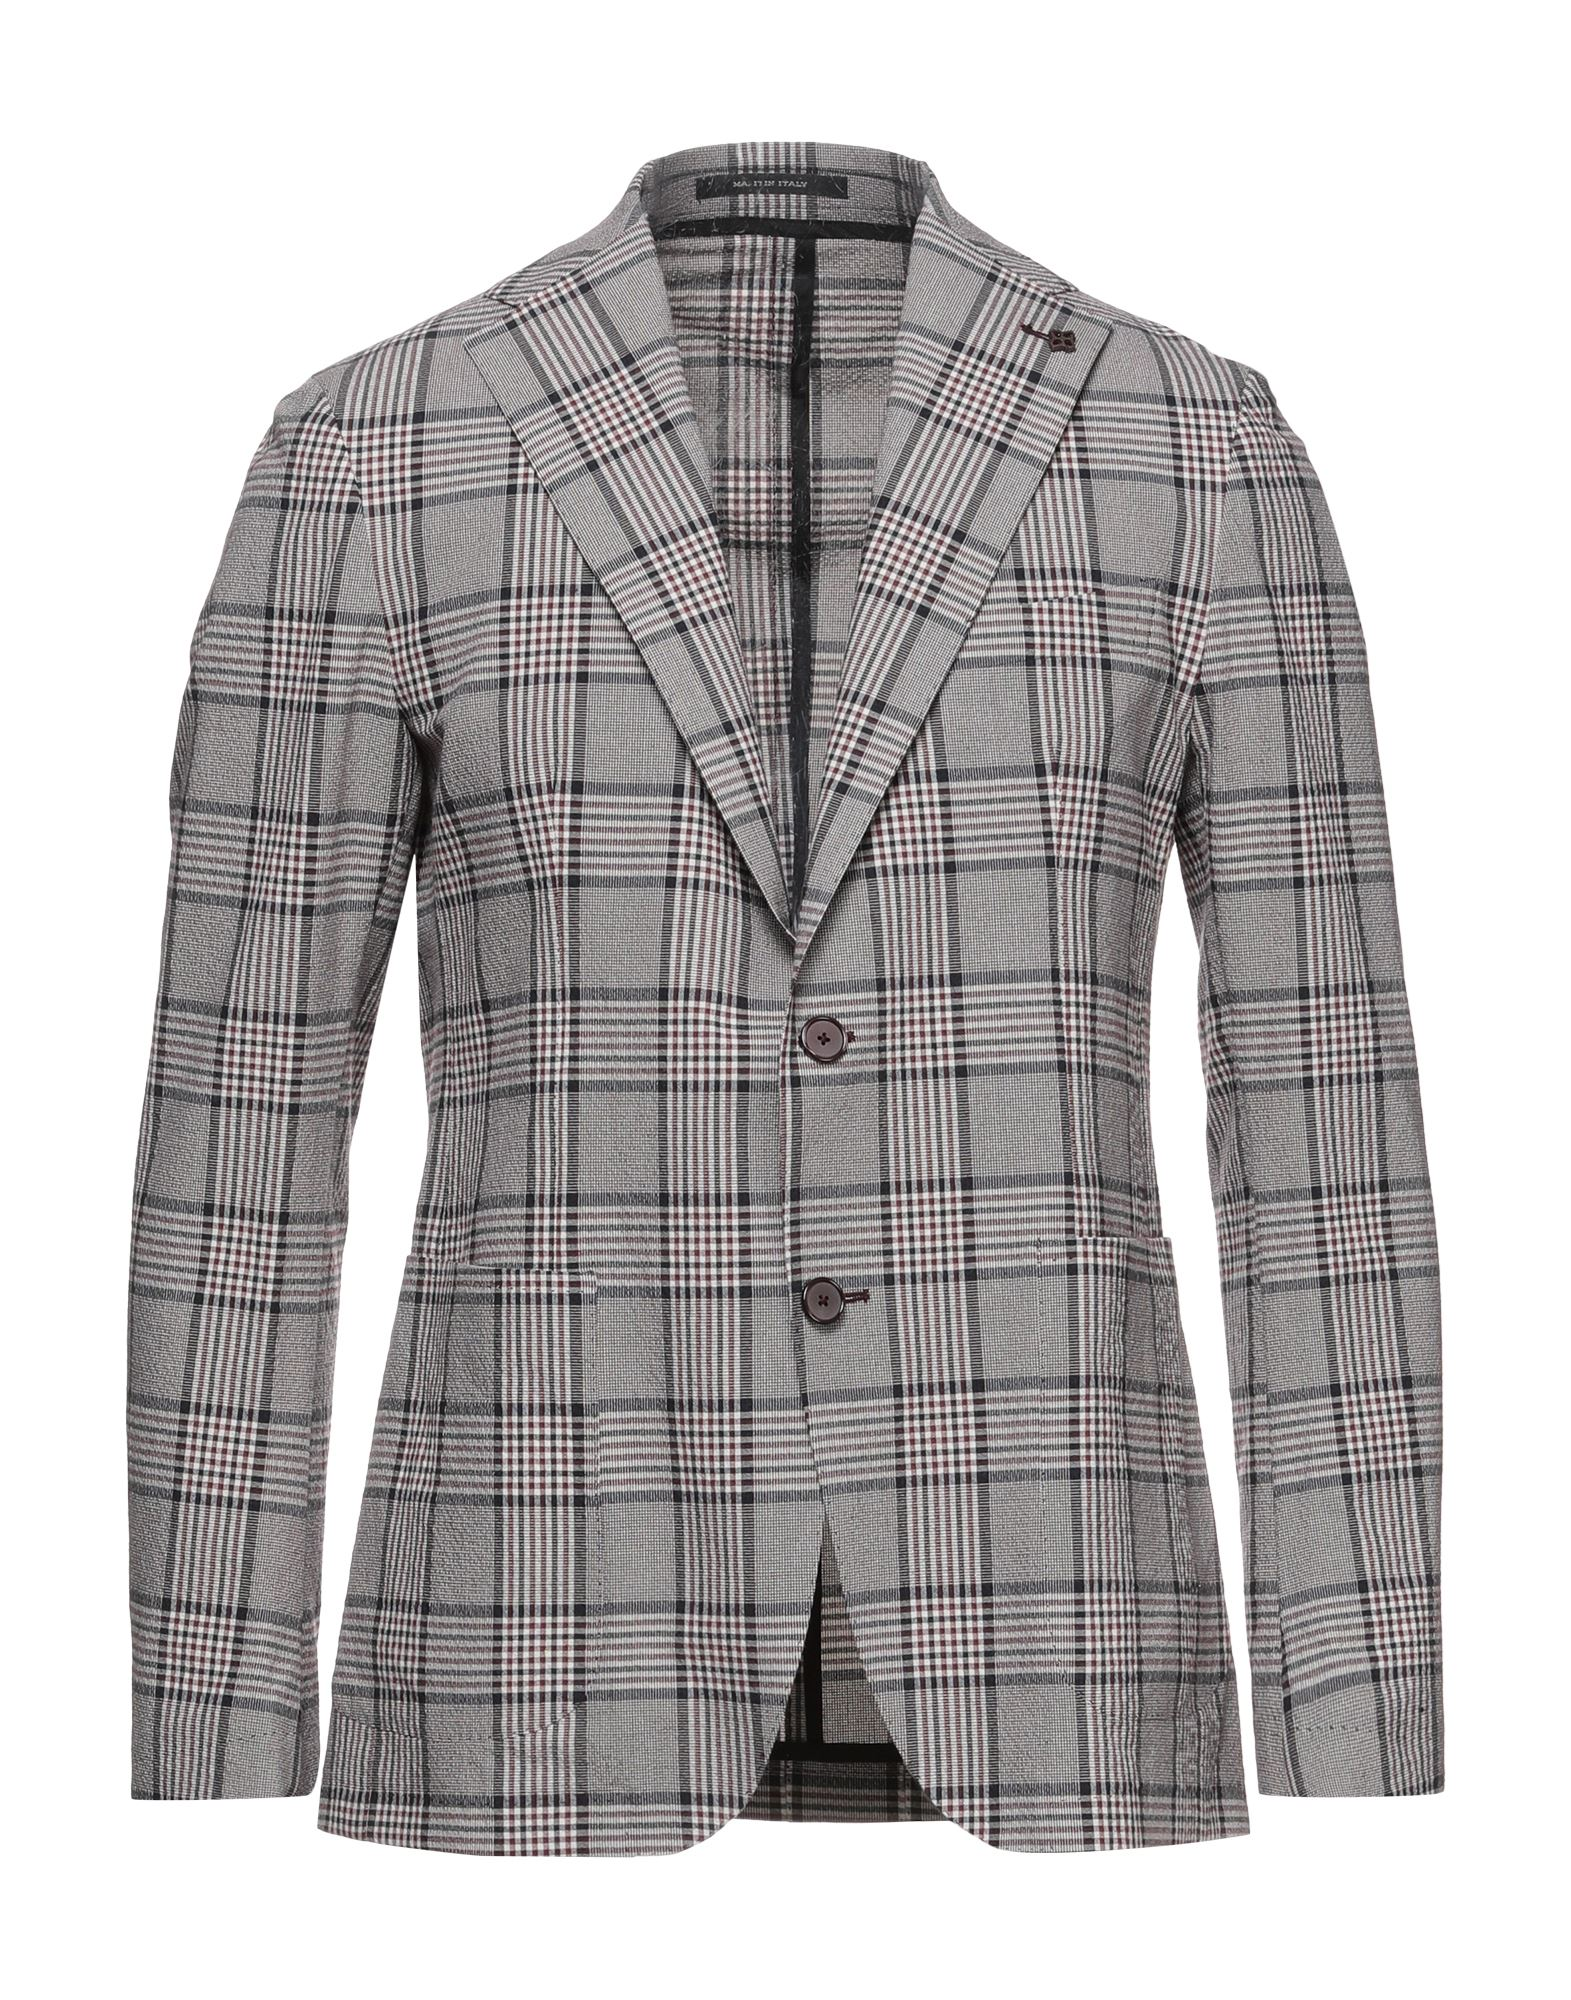 TAGLIATORE Suit jackets. plain weave, brooch, glen plaid, lapel collar, long sleeves, single-breasted, multipockets, button closing, single chest pocket, unlined, dual back vents, two inside pockets, stretch. 98% Cotton, 2% Elastane